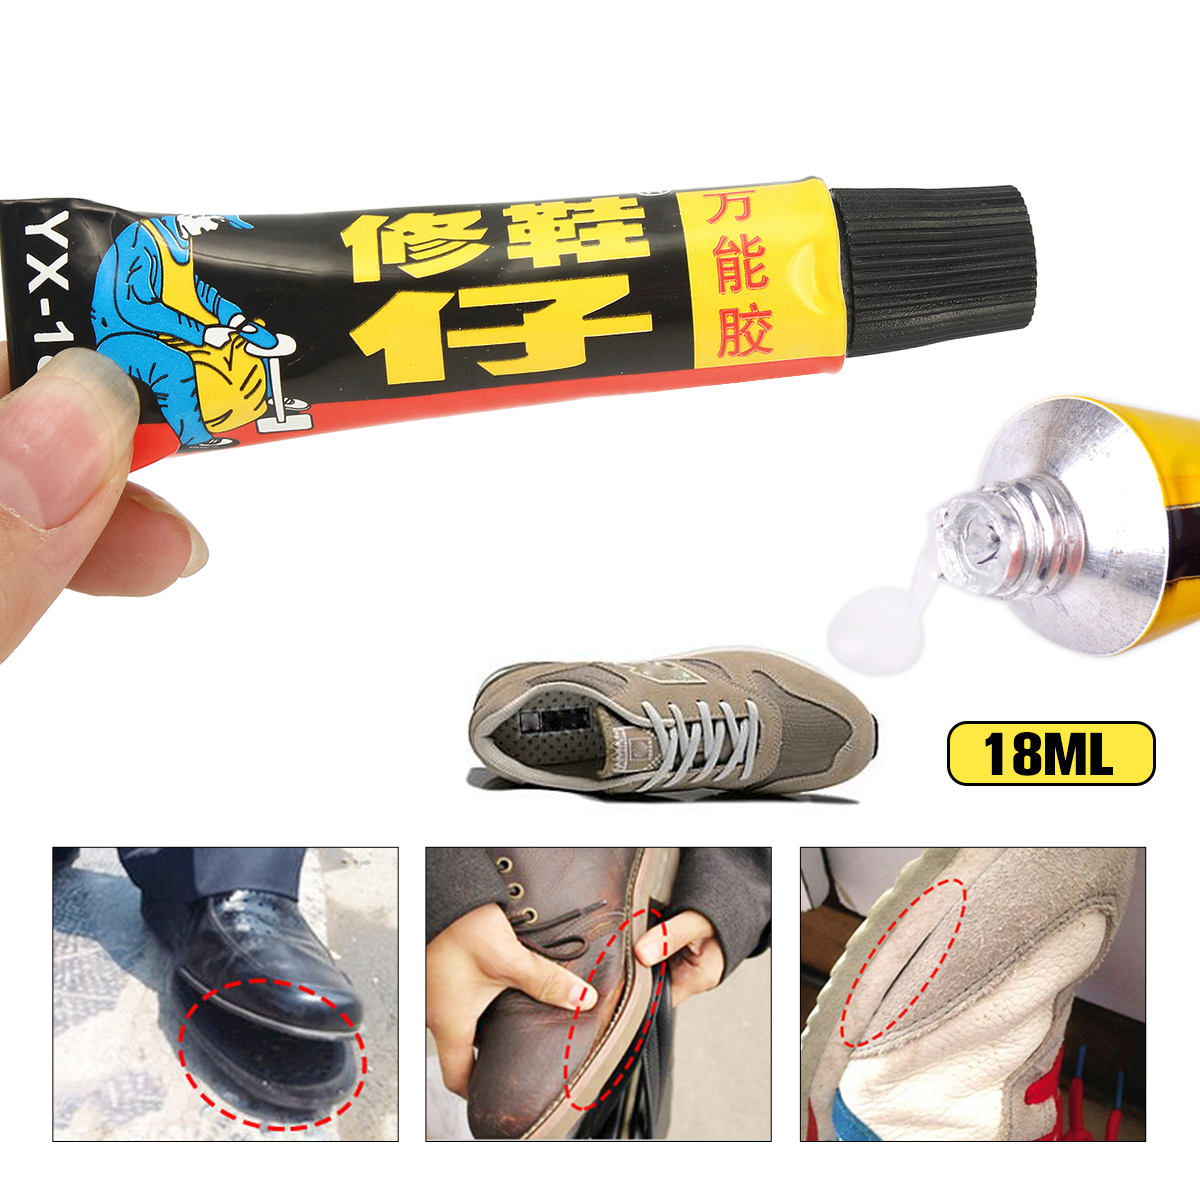 все цены на MTGATHER 18ml Super Adhesive Repair Glue For Shoe Leather Rubber Canvas Tube Strong Bond New Arrival